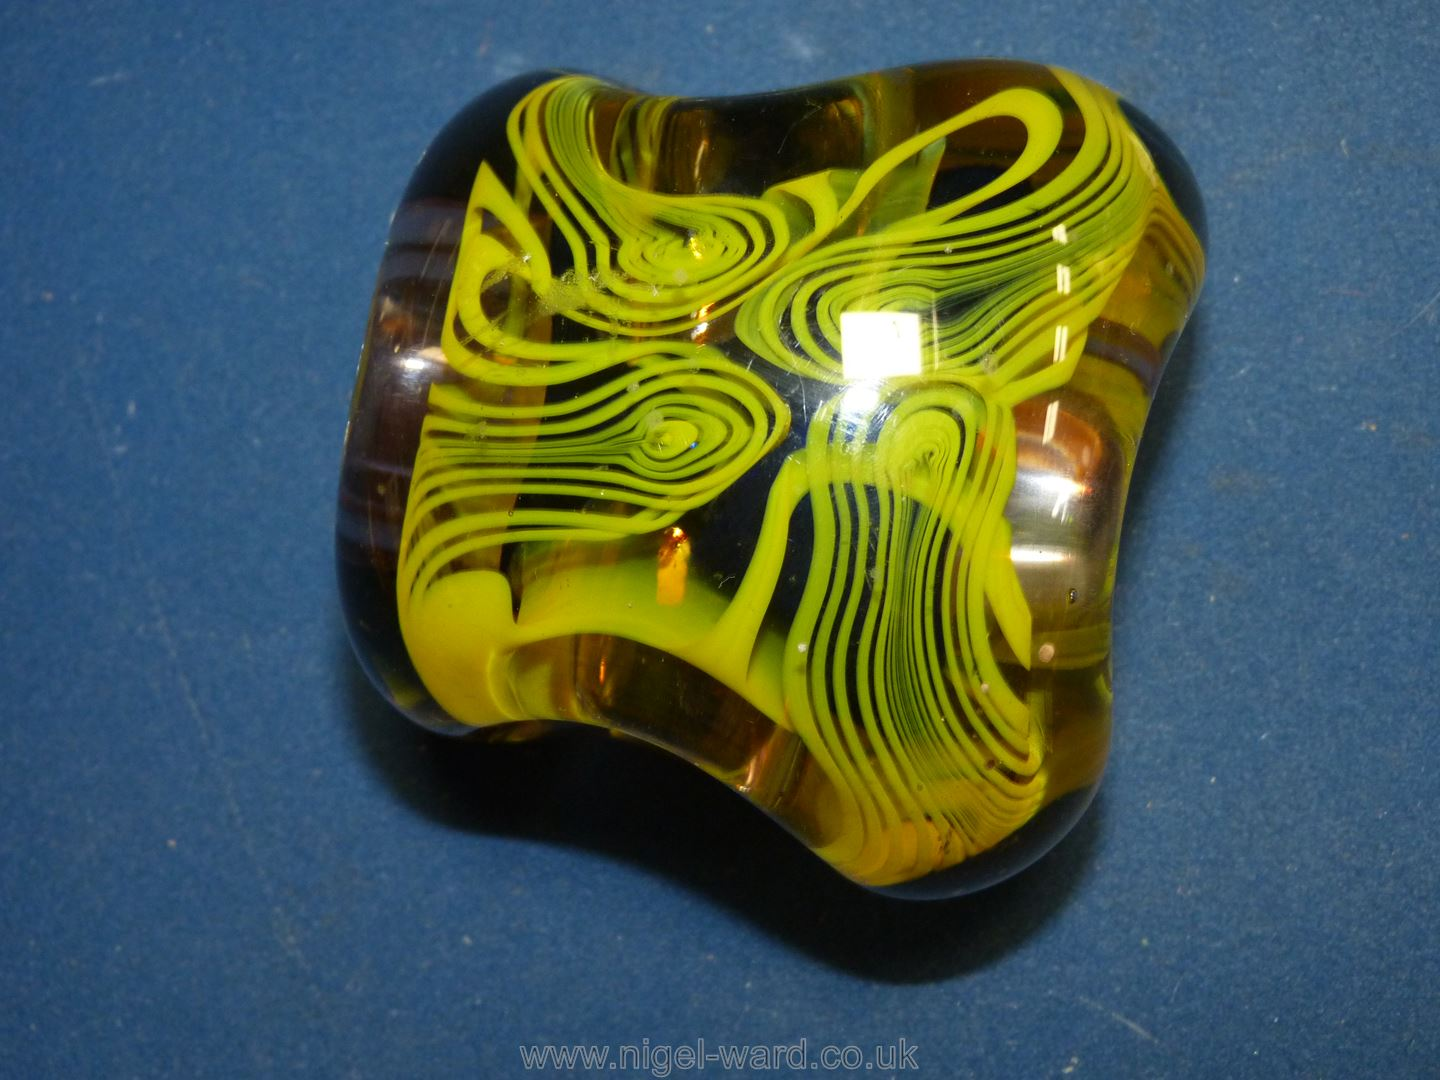 A Karlin Rushbrooke paperweight in yellow and black, - Image 3 of 6